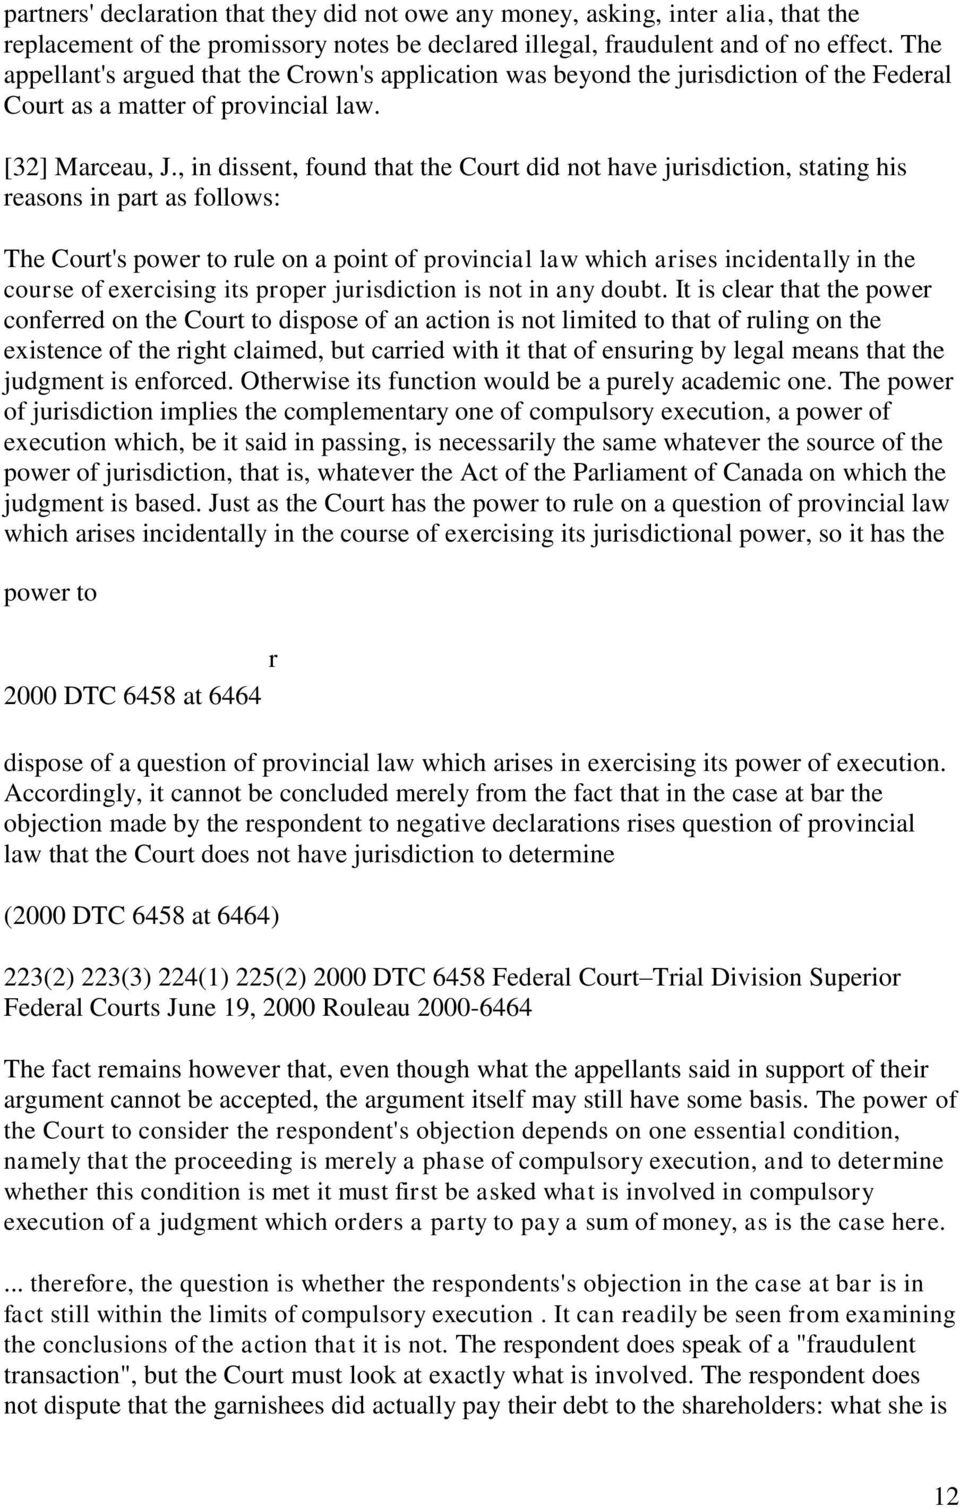 , in dissent, found that the Cout did not have juisdiction, stating his easons in pat as follows: The Cout's powe to ule on a point of povincial law which aises incidentally in the couse of execising